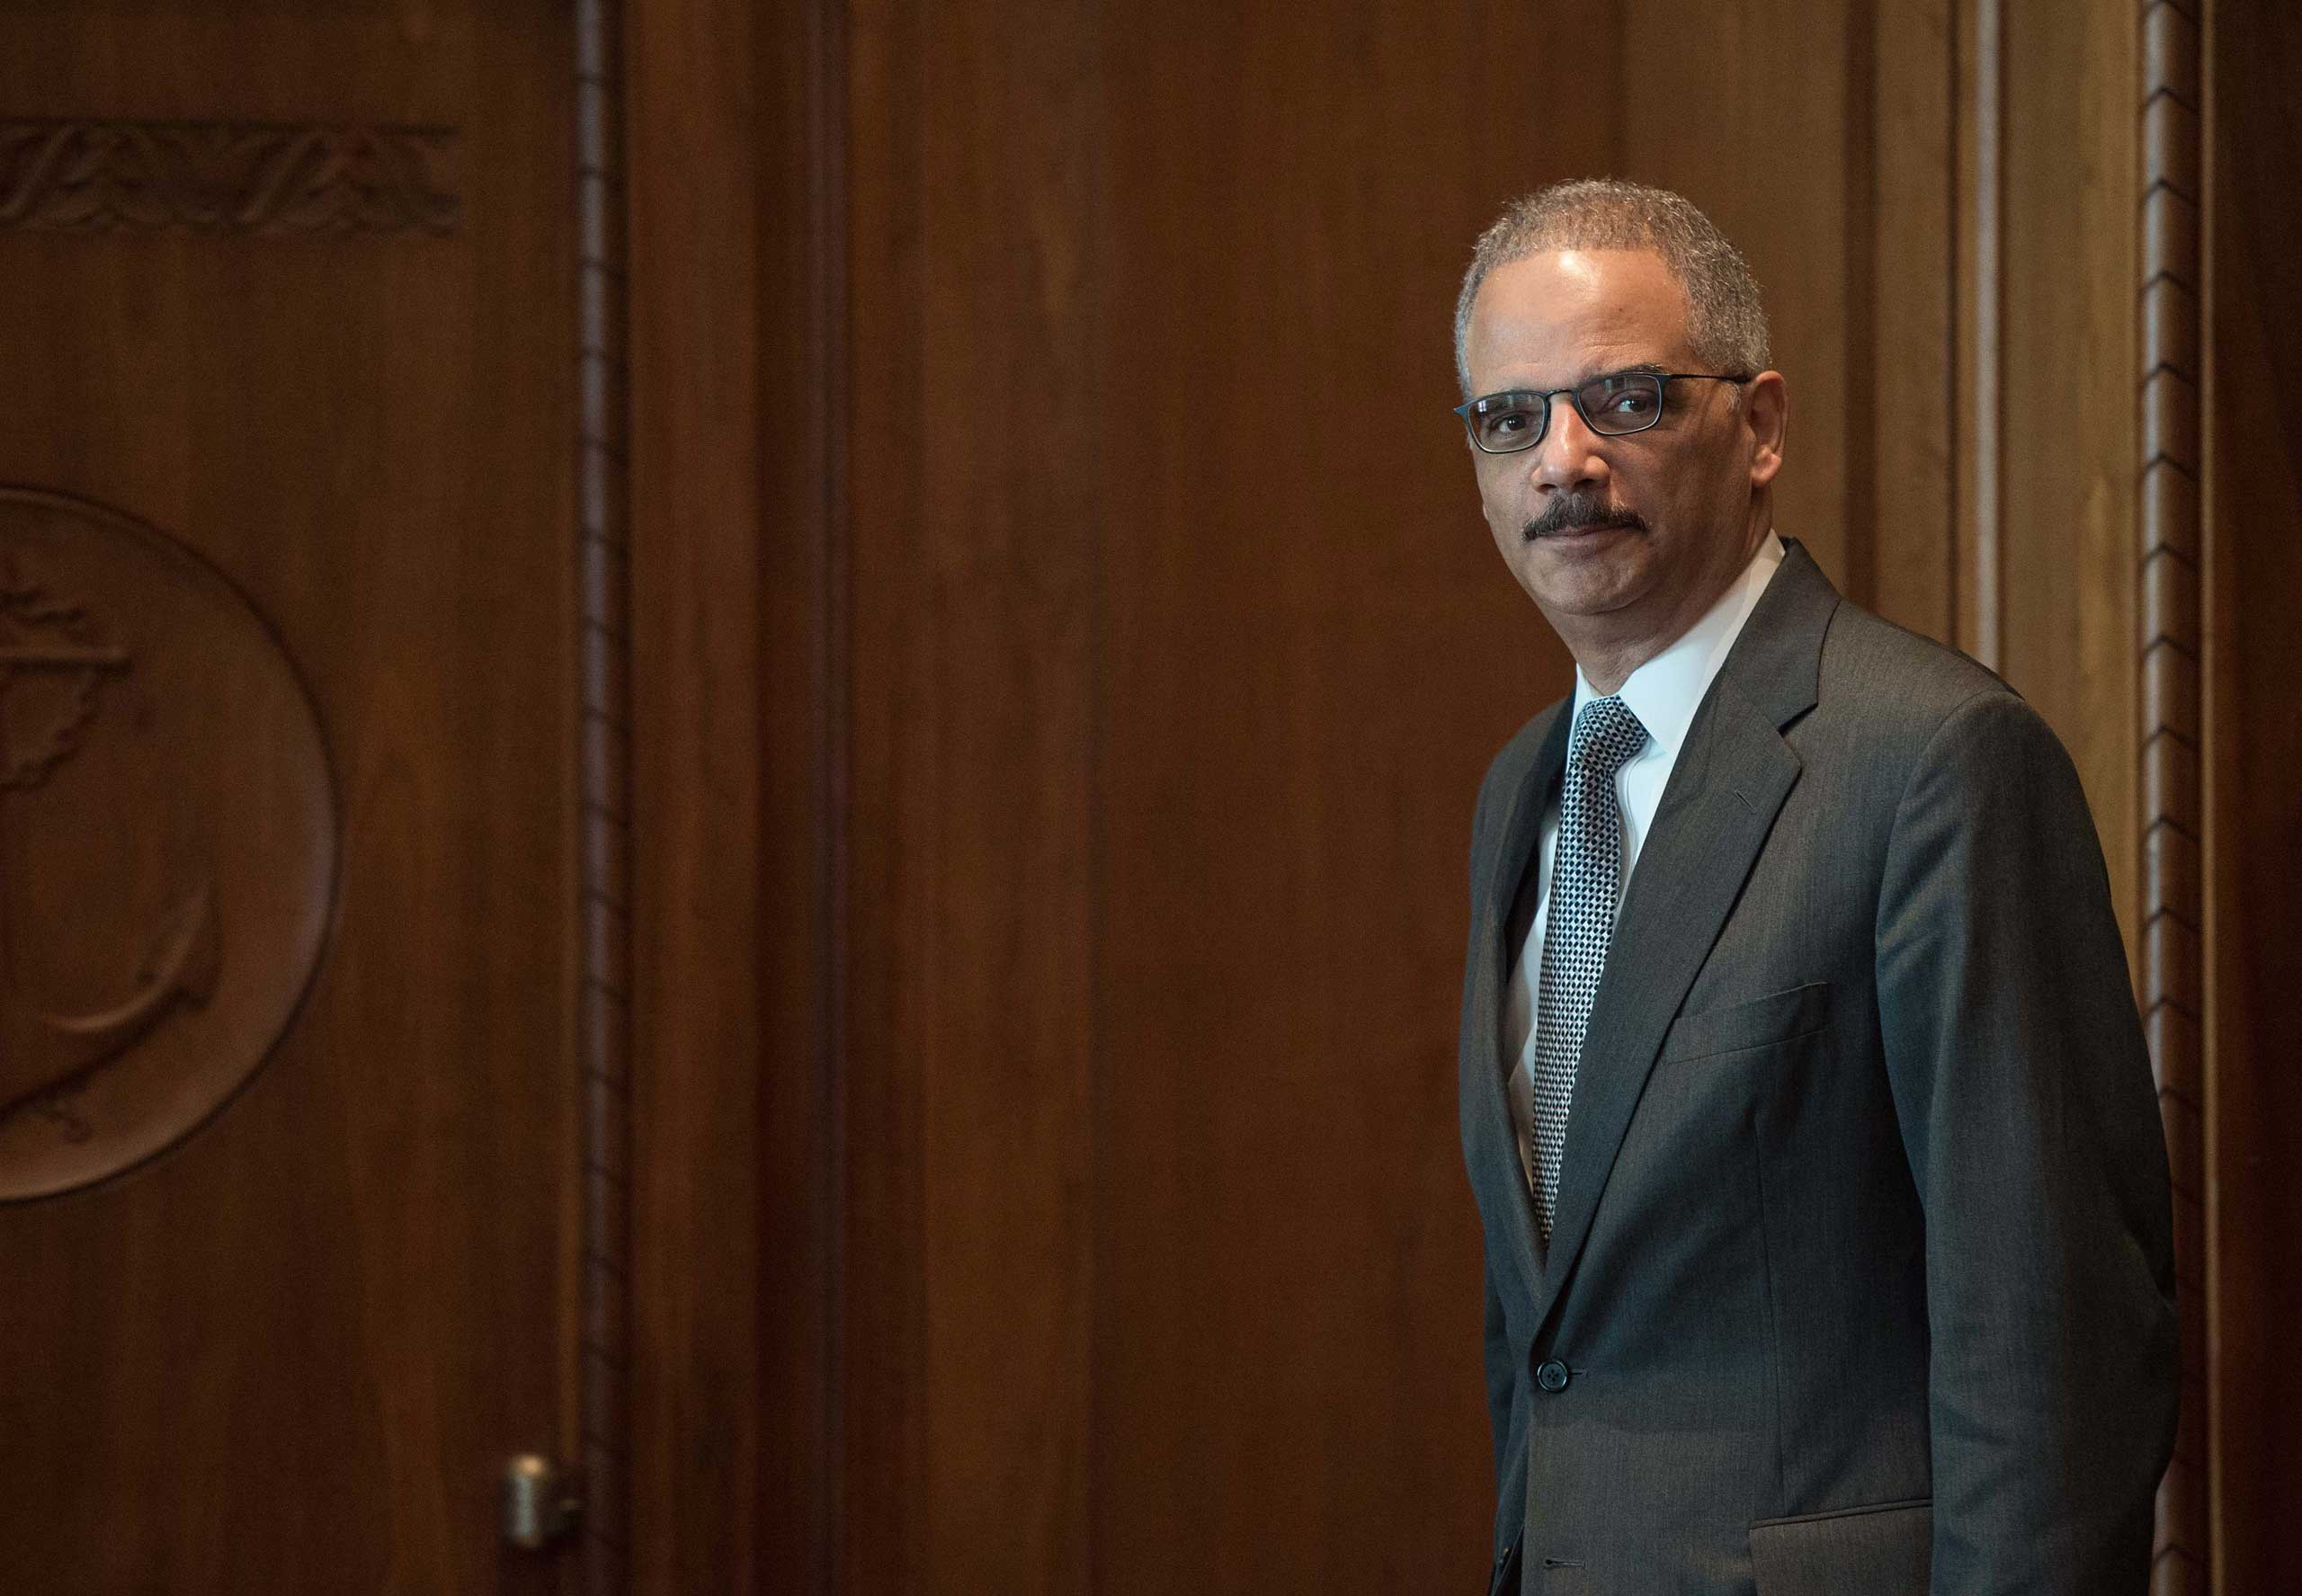 US Attorney General Eric Holder arrives for a meeting with French Interior Minister Bernard Cazeneuve at the Justice Department in Washington on Feb. 19, 2015.